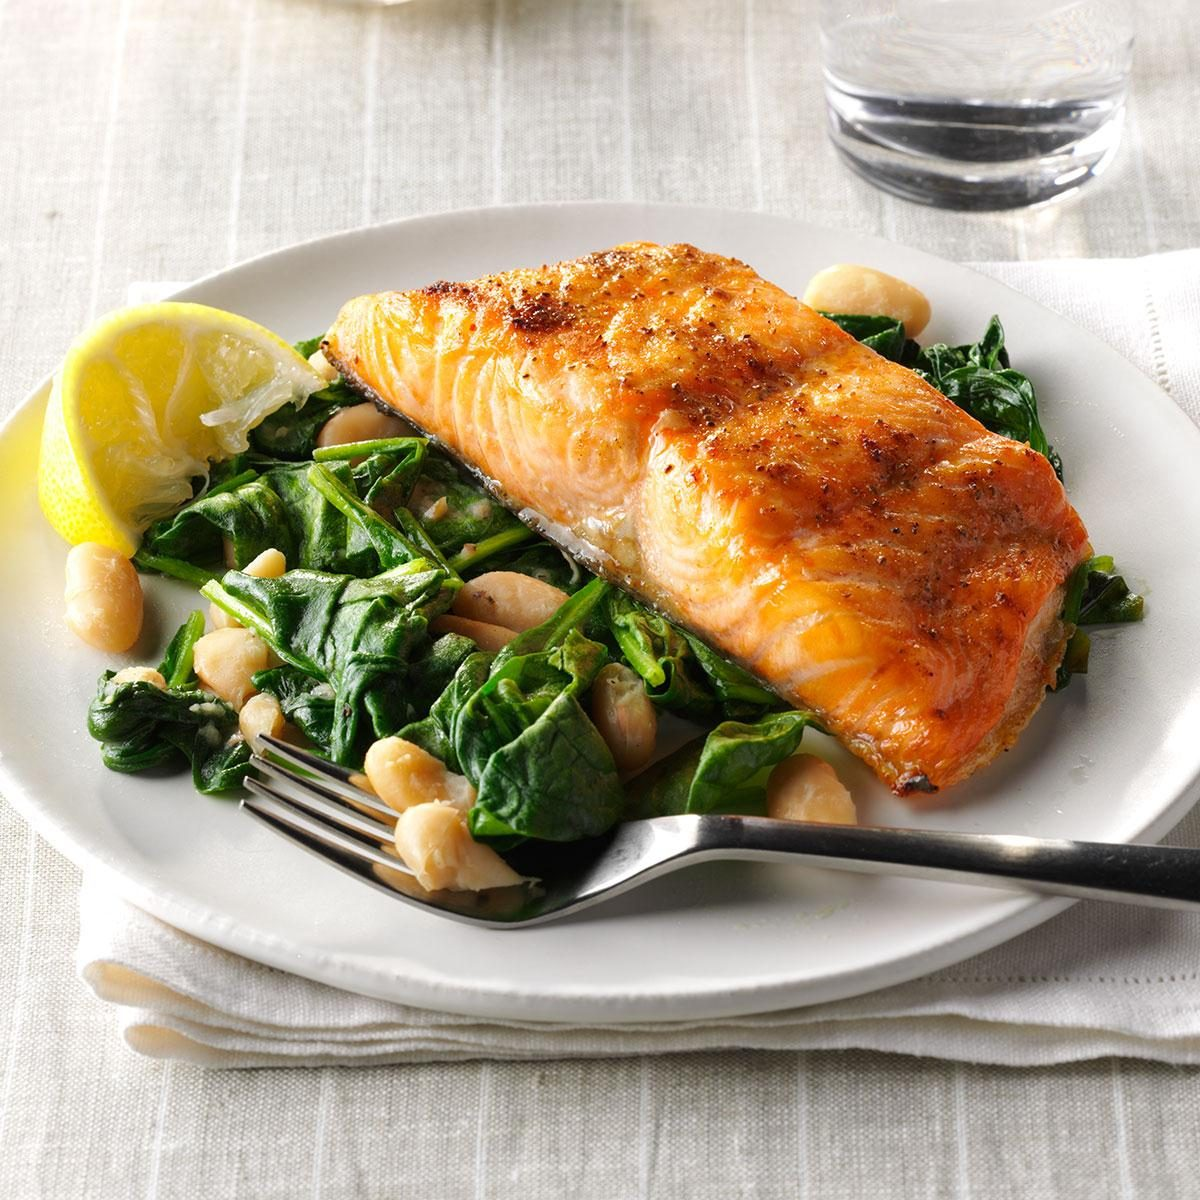 Saturday: Salmon with Spinach & White Beans